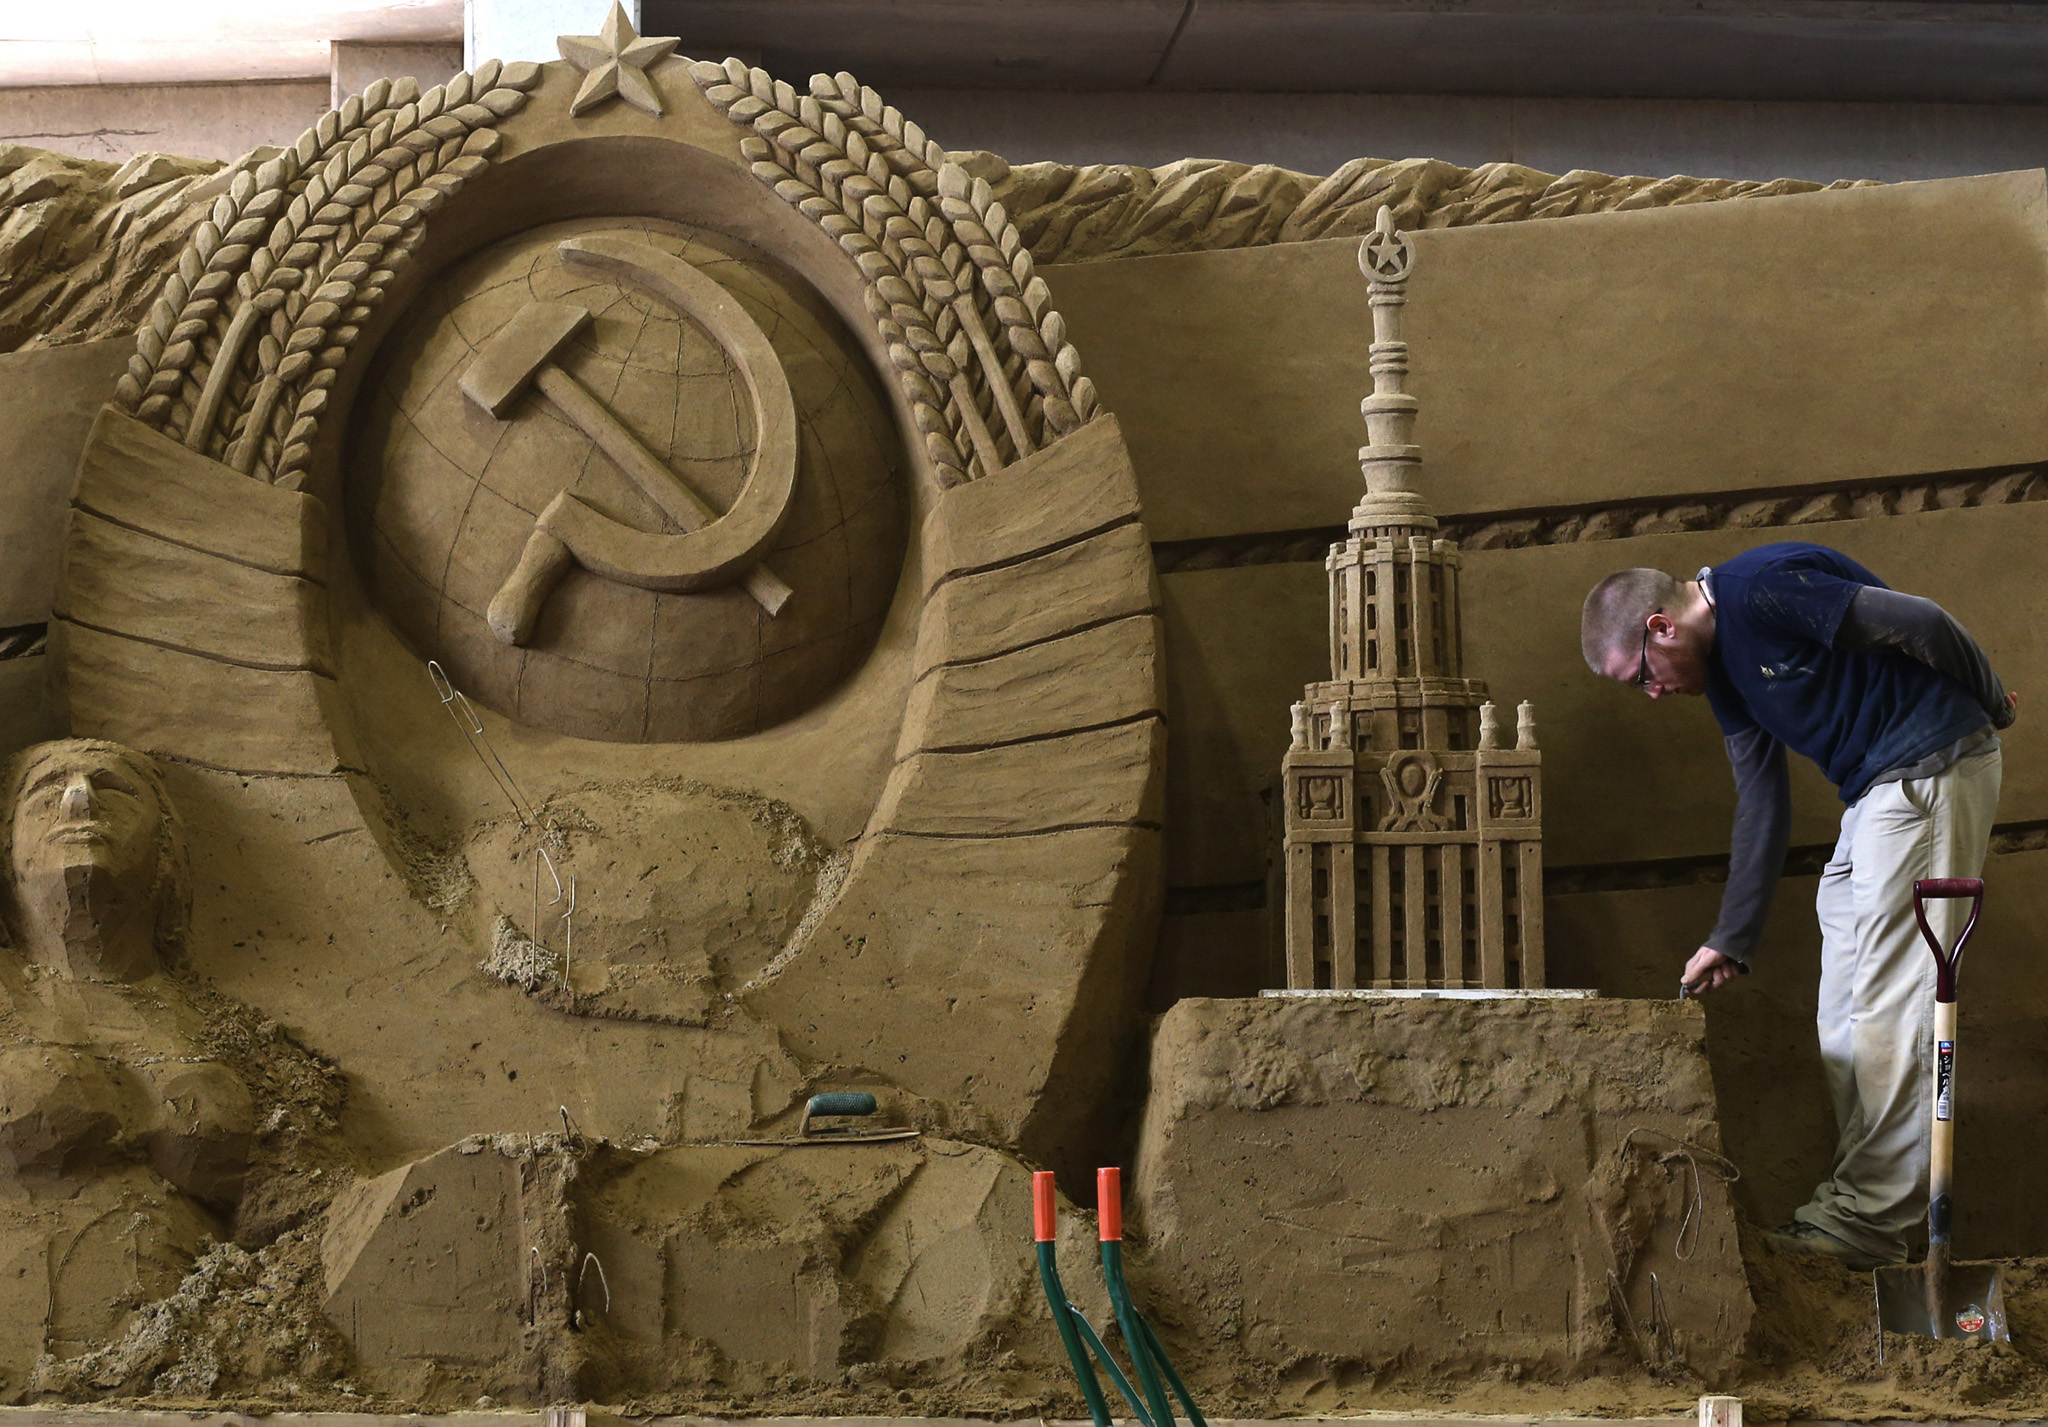 "Guy Deveau of Canada finishes a sand sculpture named ""Soviet Union"" at the Sand Museum in the Tottori Dune in Tottori, Japan. The 7th annual sand sculpture exhibition hosted by this world's first sand museum, features the theme ""Russia"" this year as mark to hosted 2014 Winter Olympic Game in Sochi. The exhibition is open to the public from April 19, 2014 to January 4, 2015"